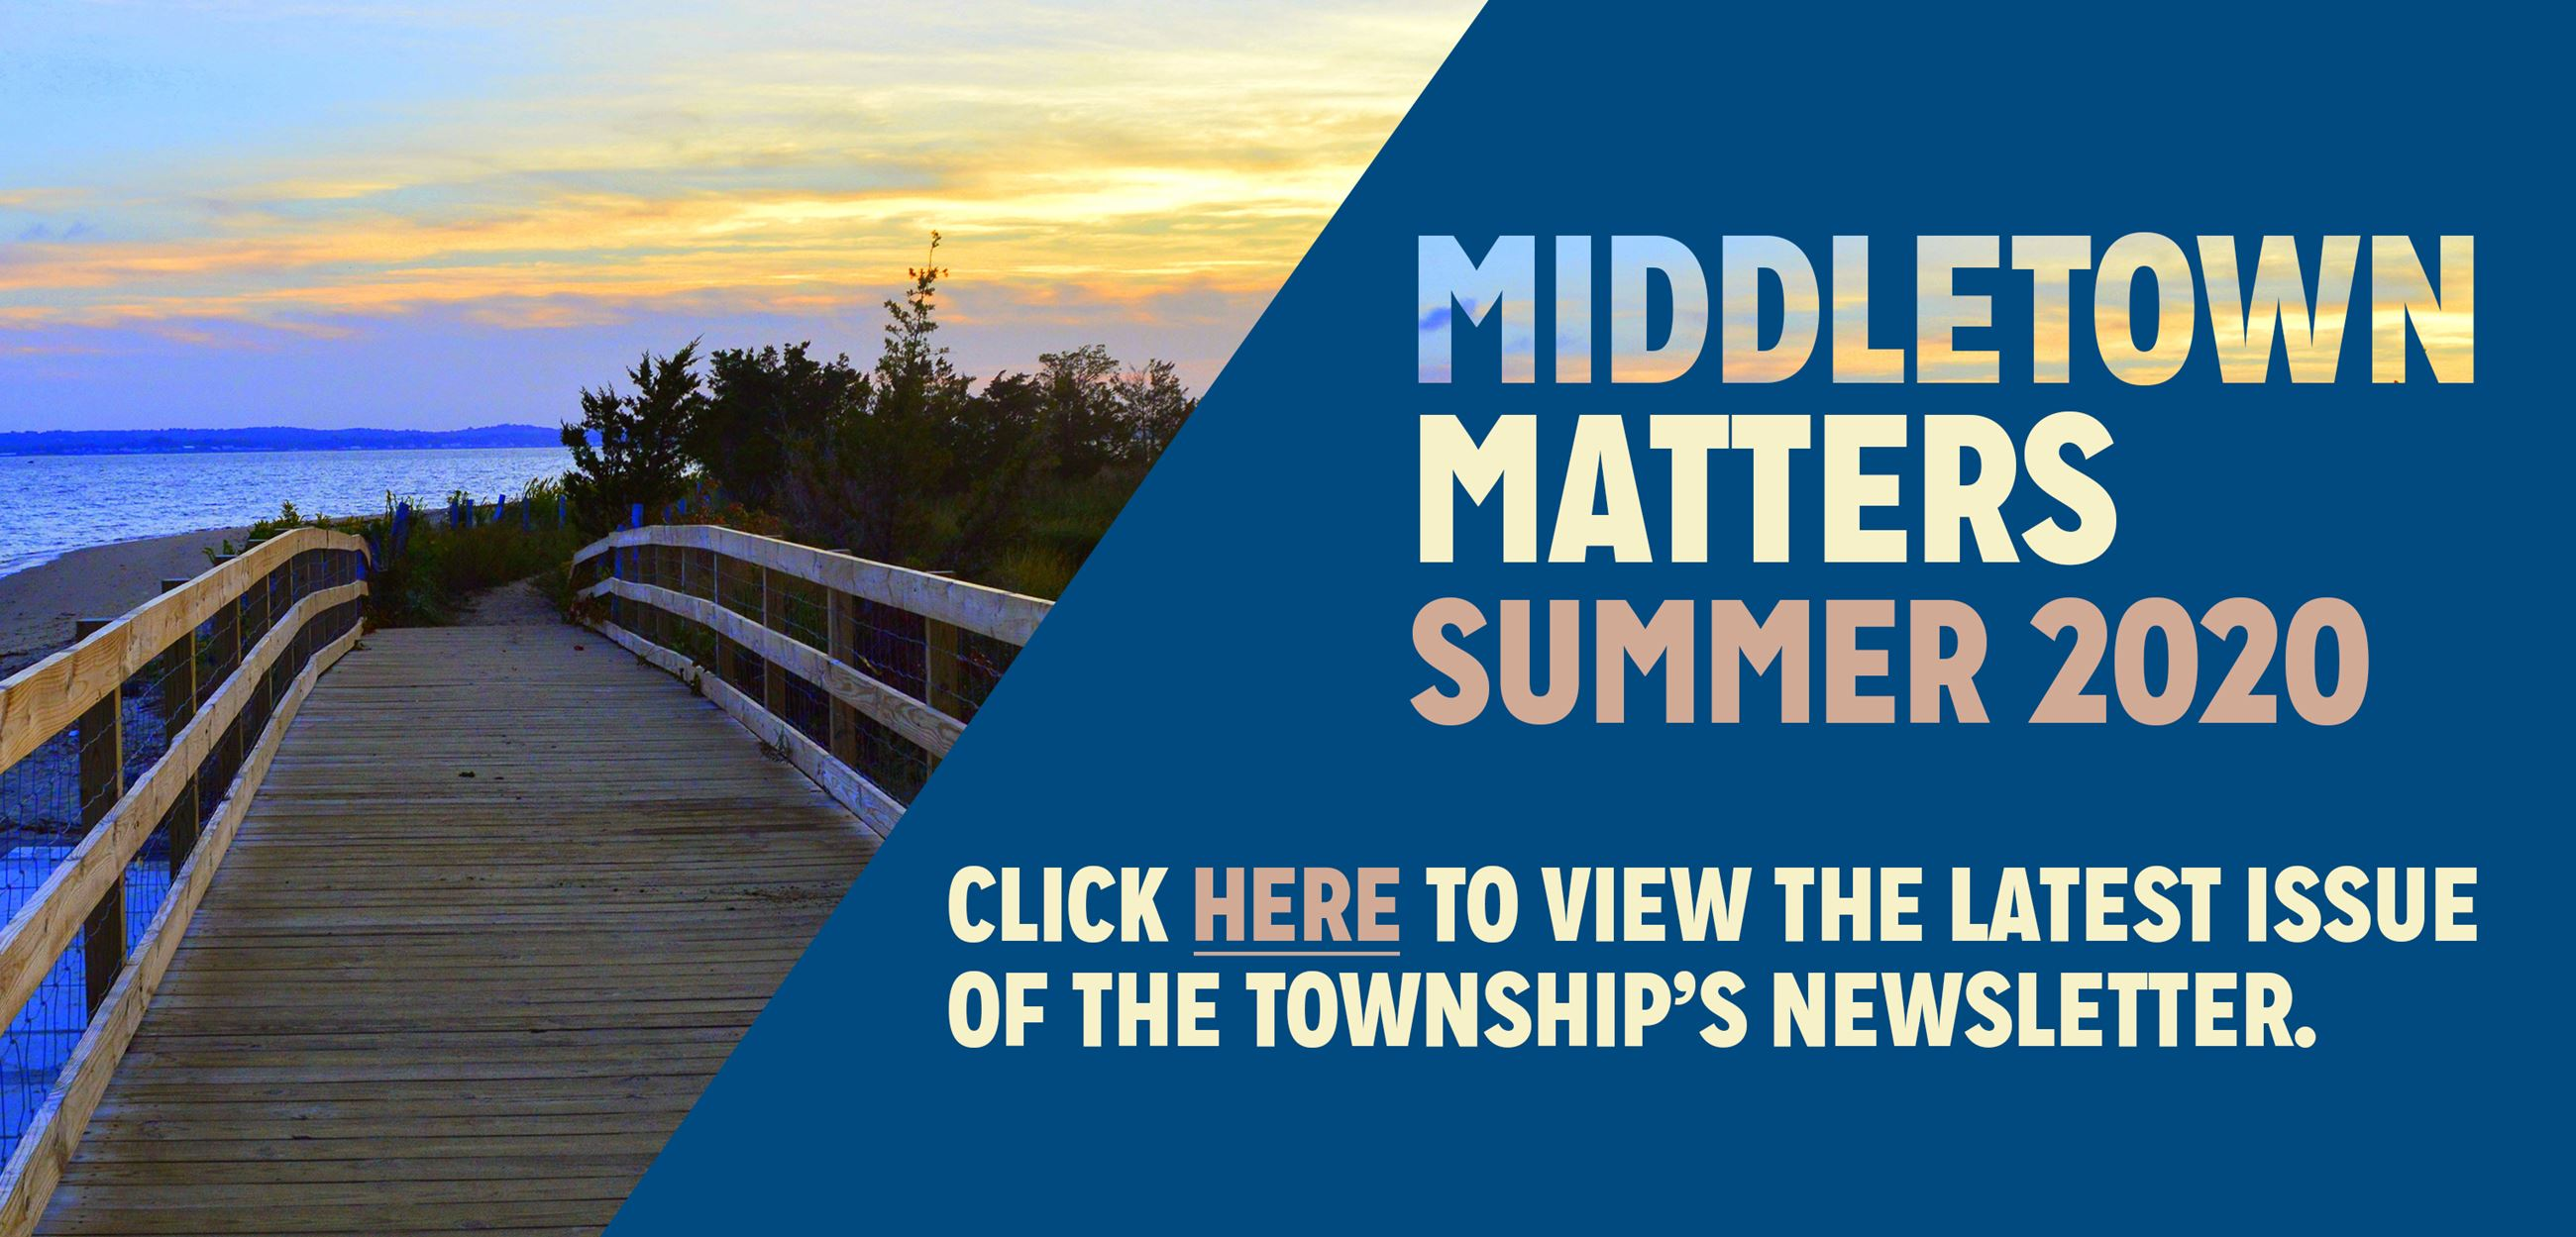 MIDDLETOWN MATTERS SUMMER 2020 GRAPHIC